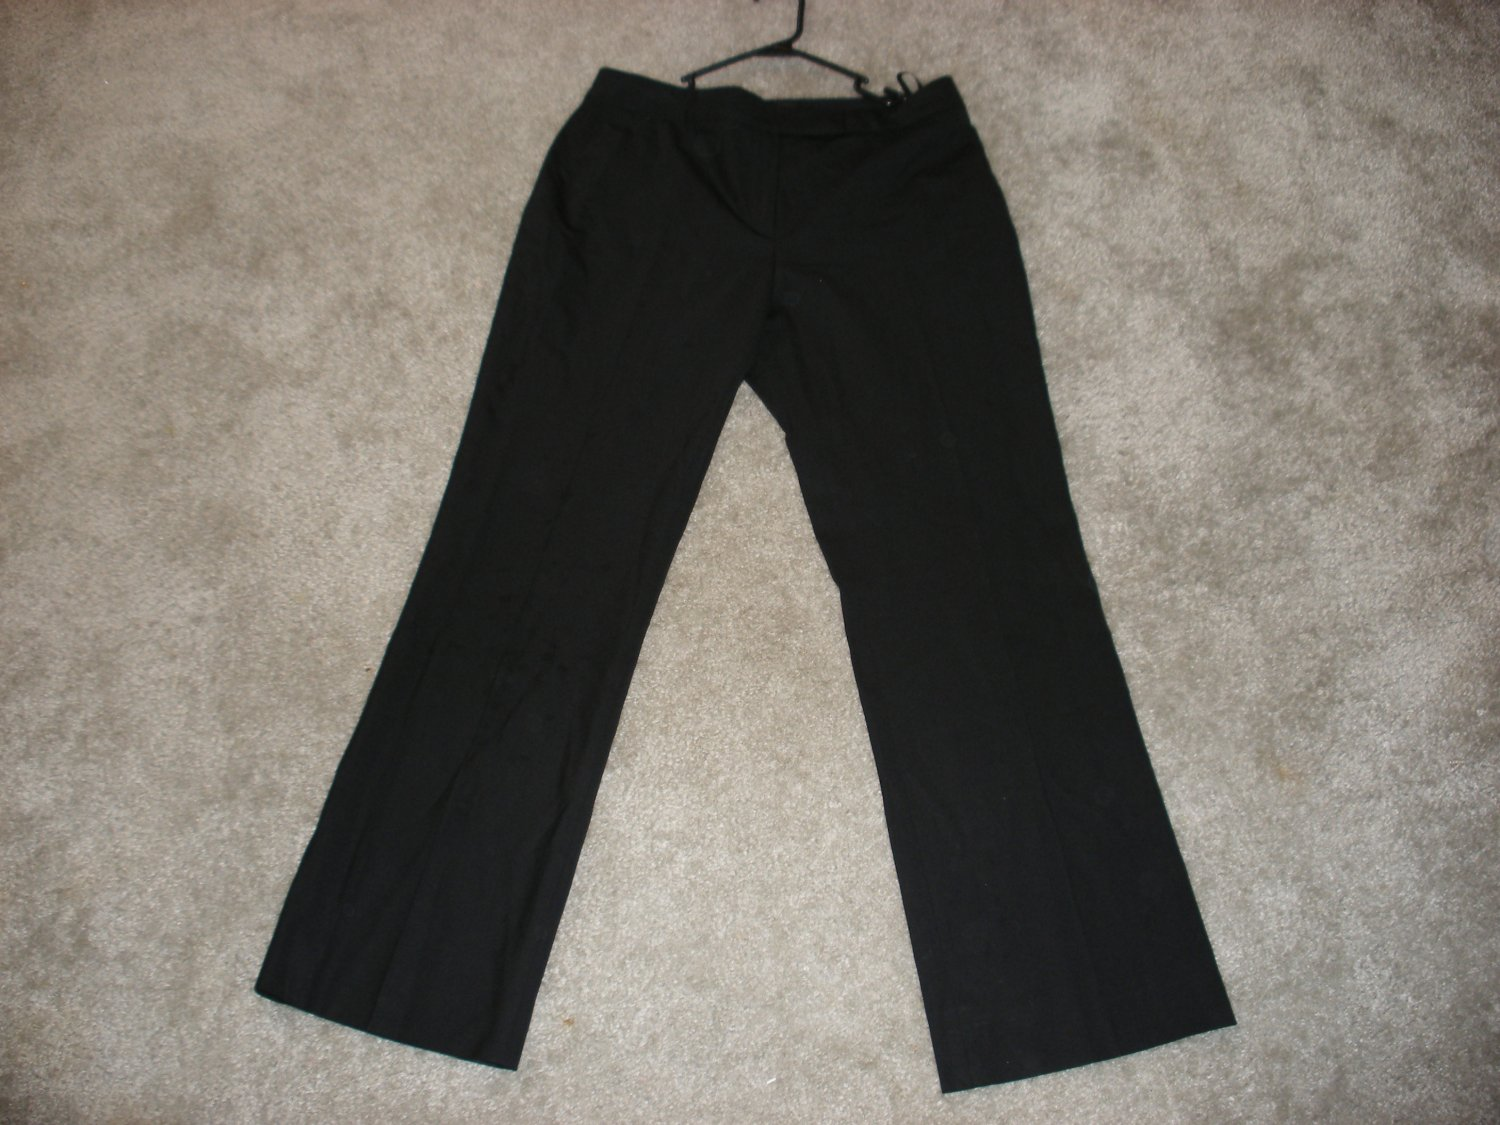 LOUIS VUITTON BLACK PANTS SIZE 42